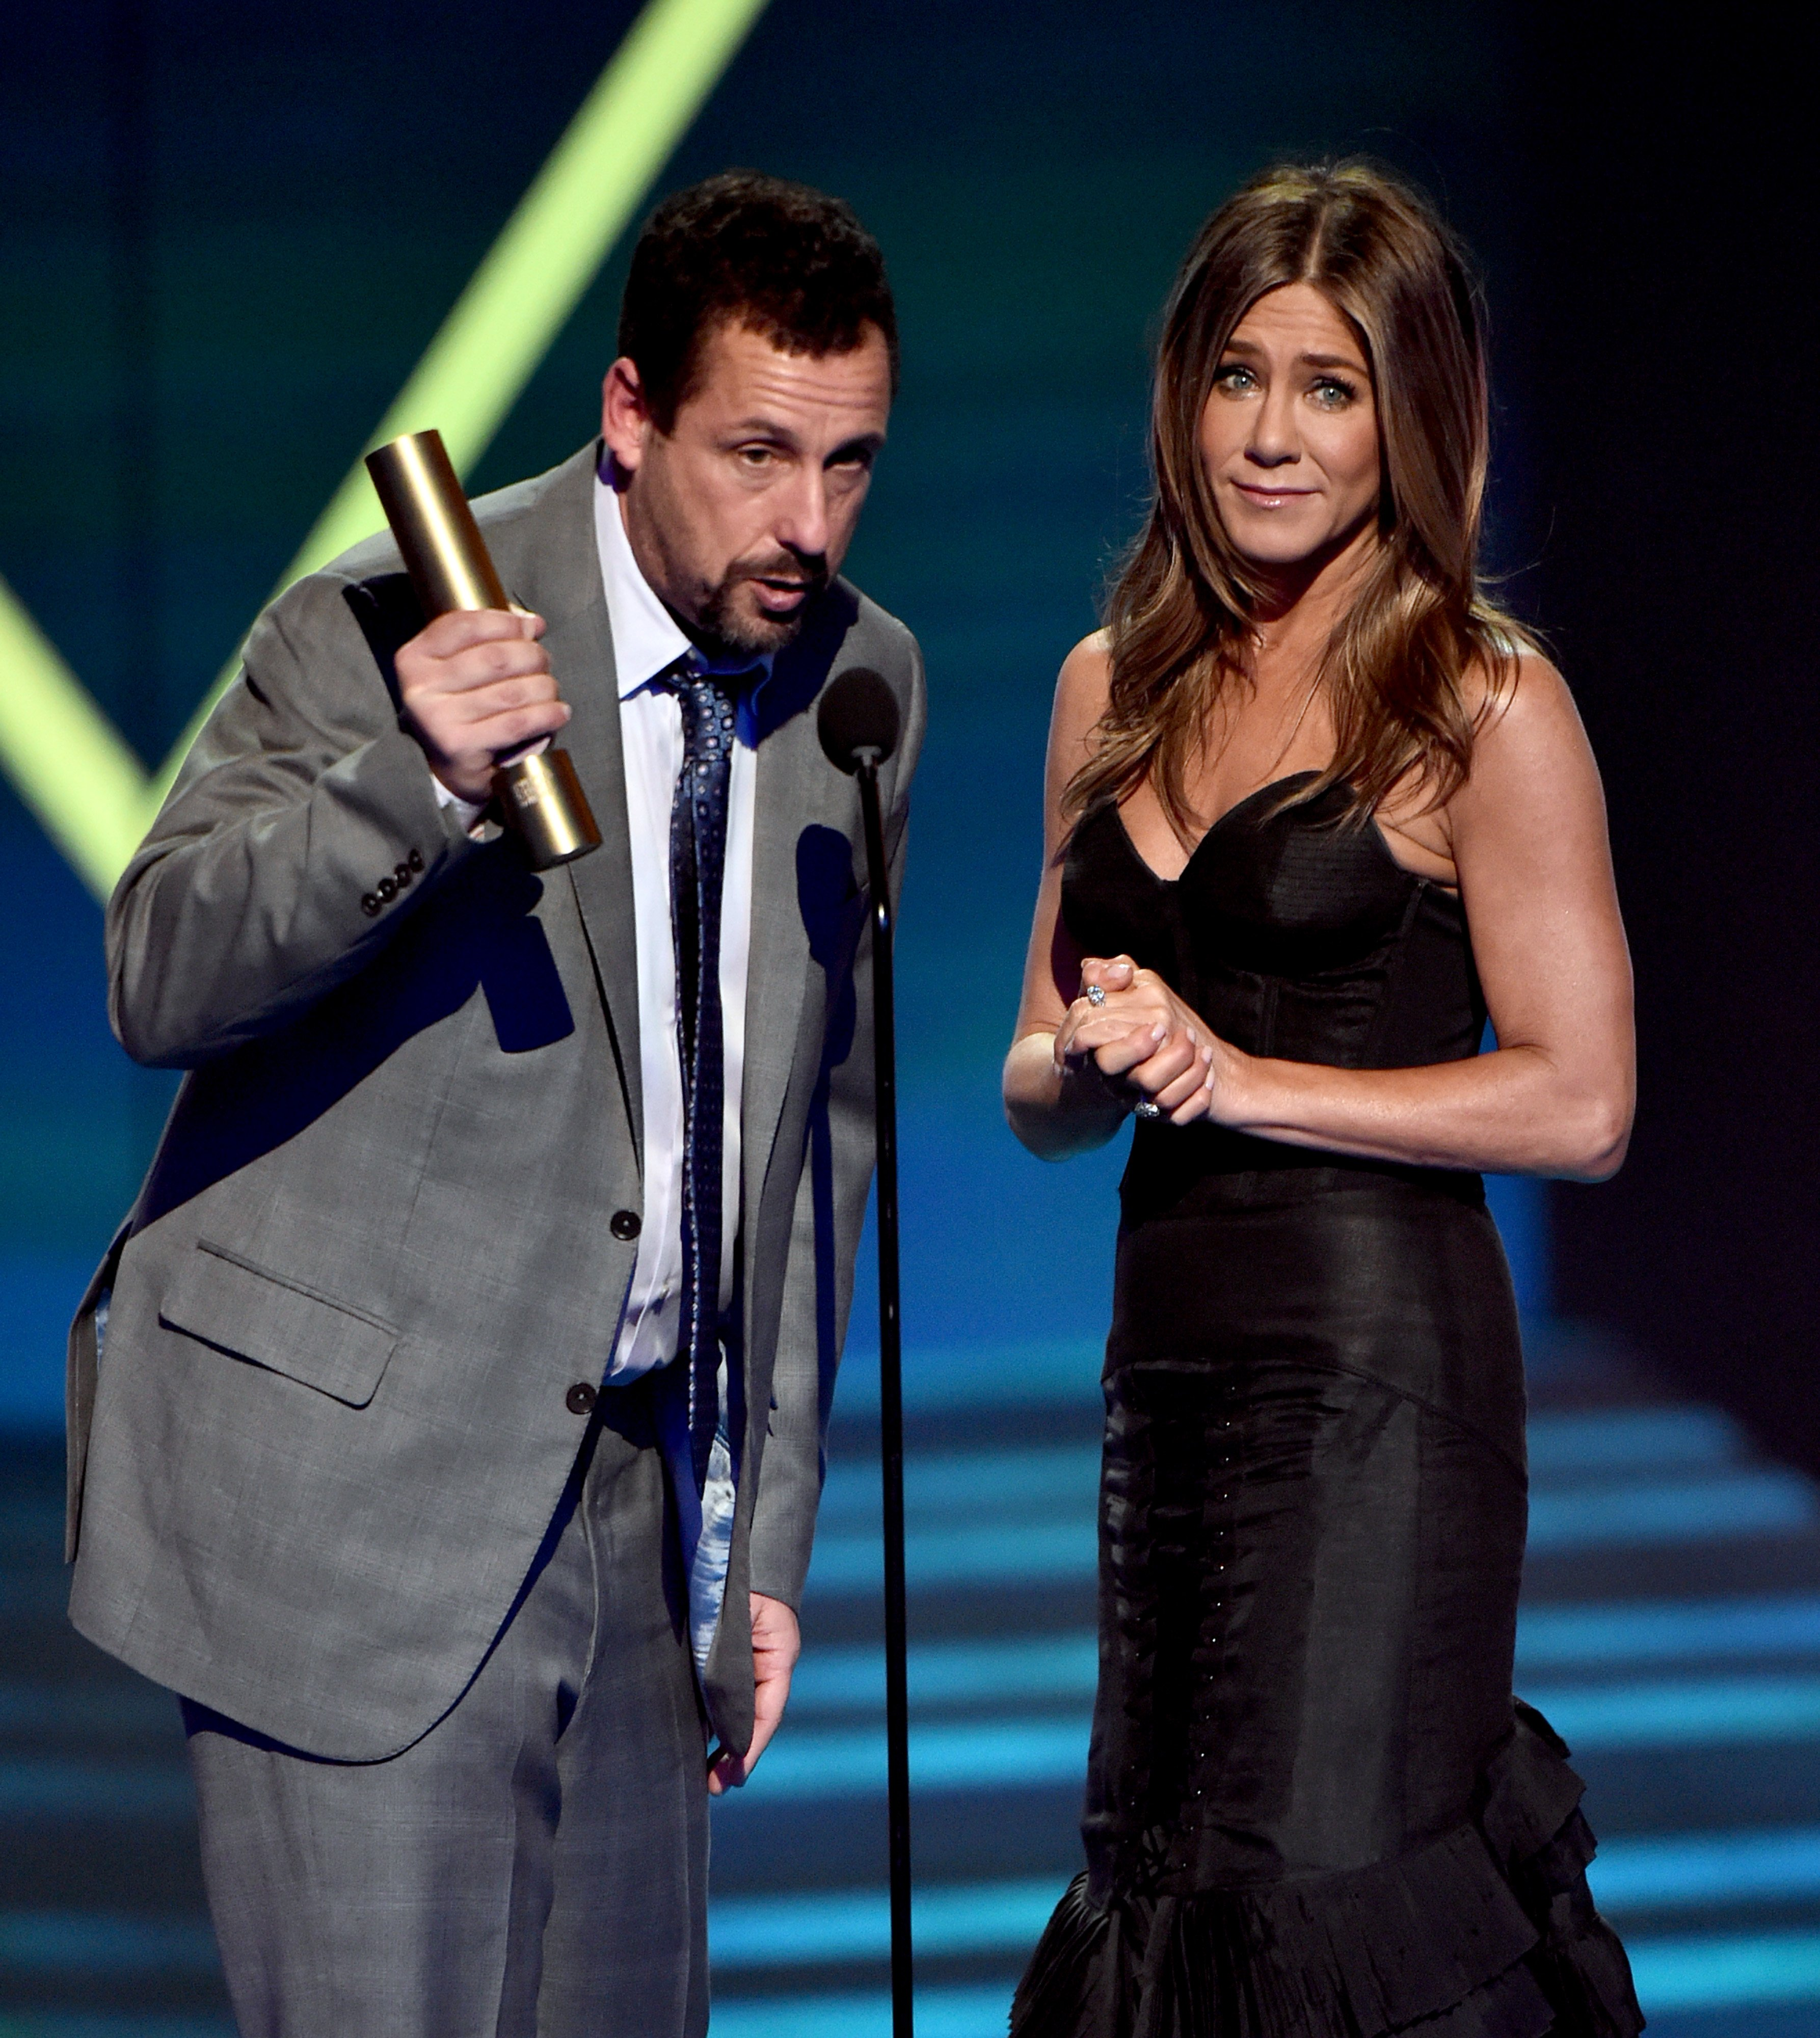 Adam Sandler and Jennifer Aniston accept the Comedy Movie of 2019 Award at the E! People's Choice Awards, 2019 | Photo: Getty Images